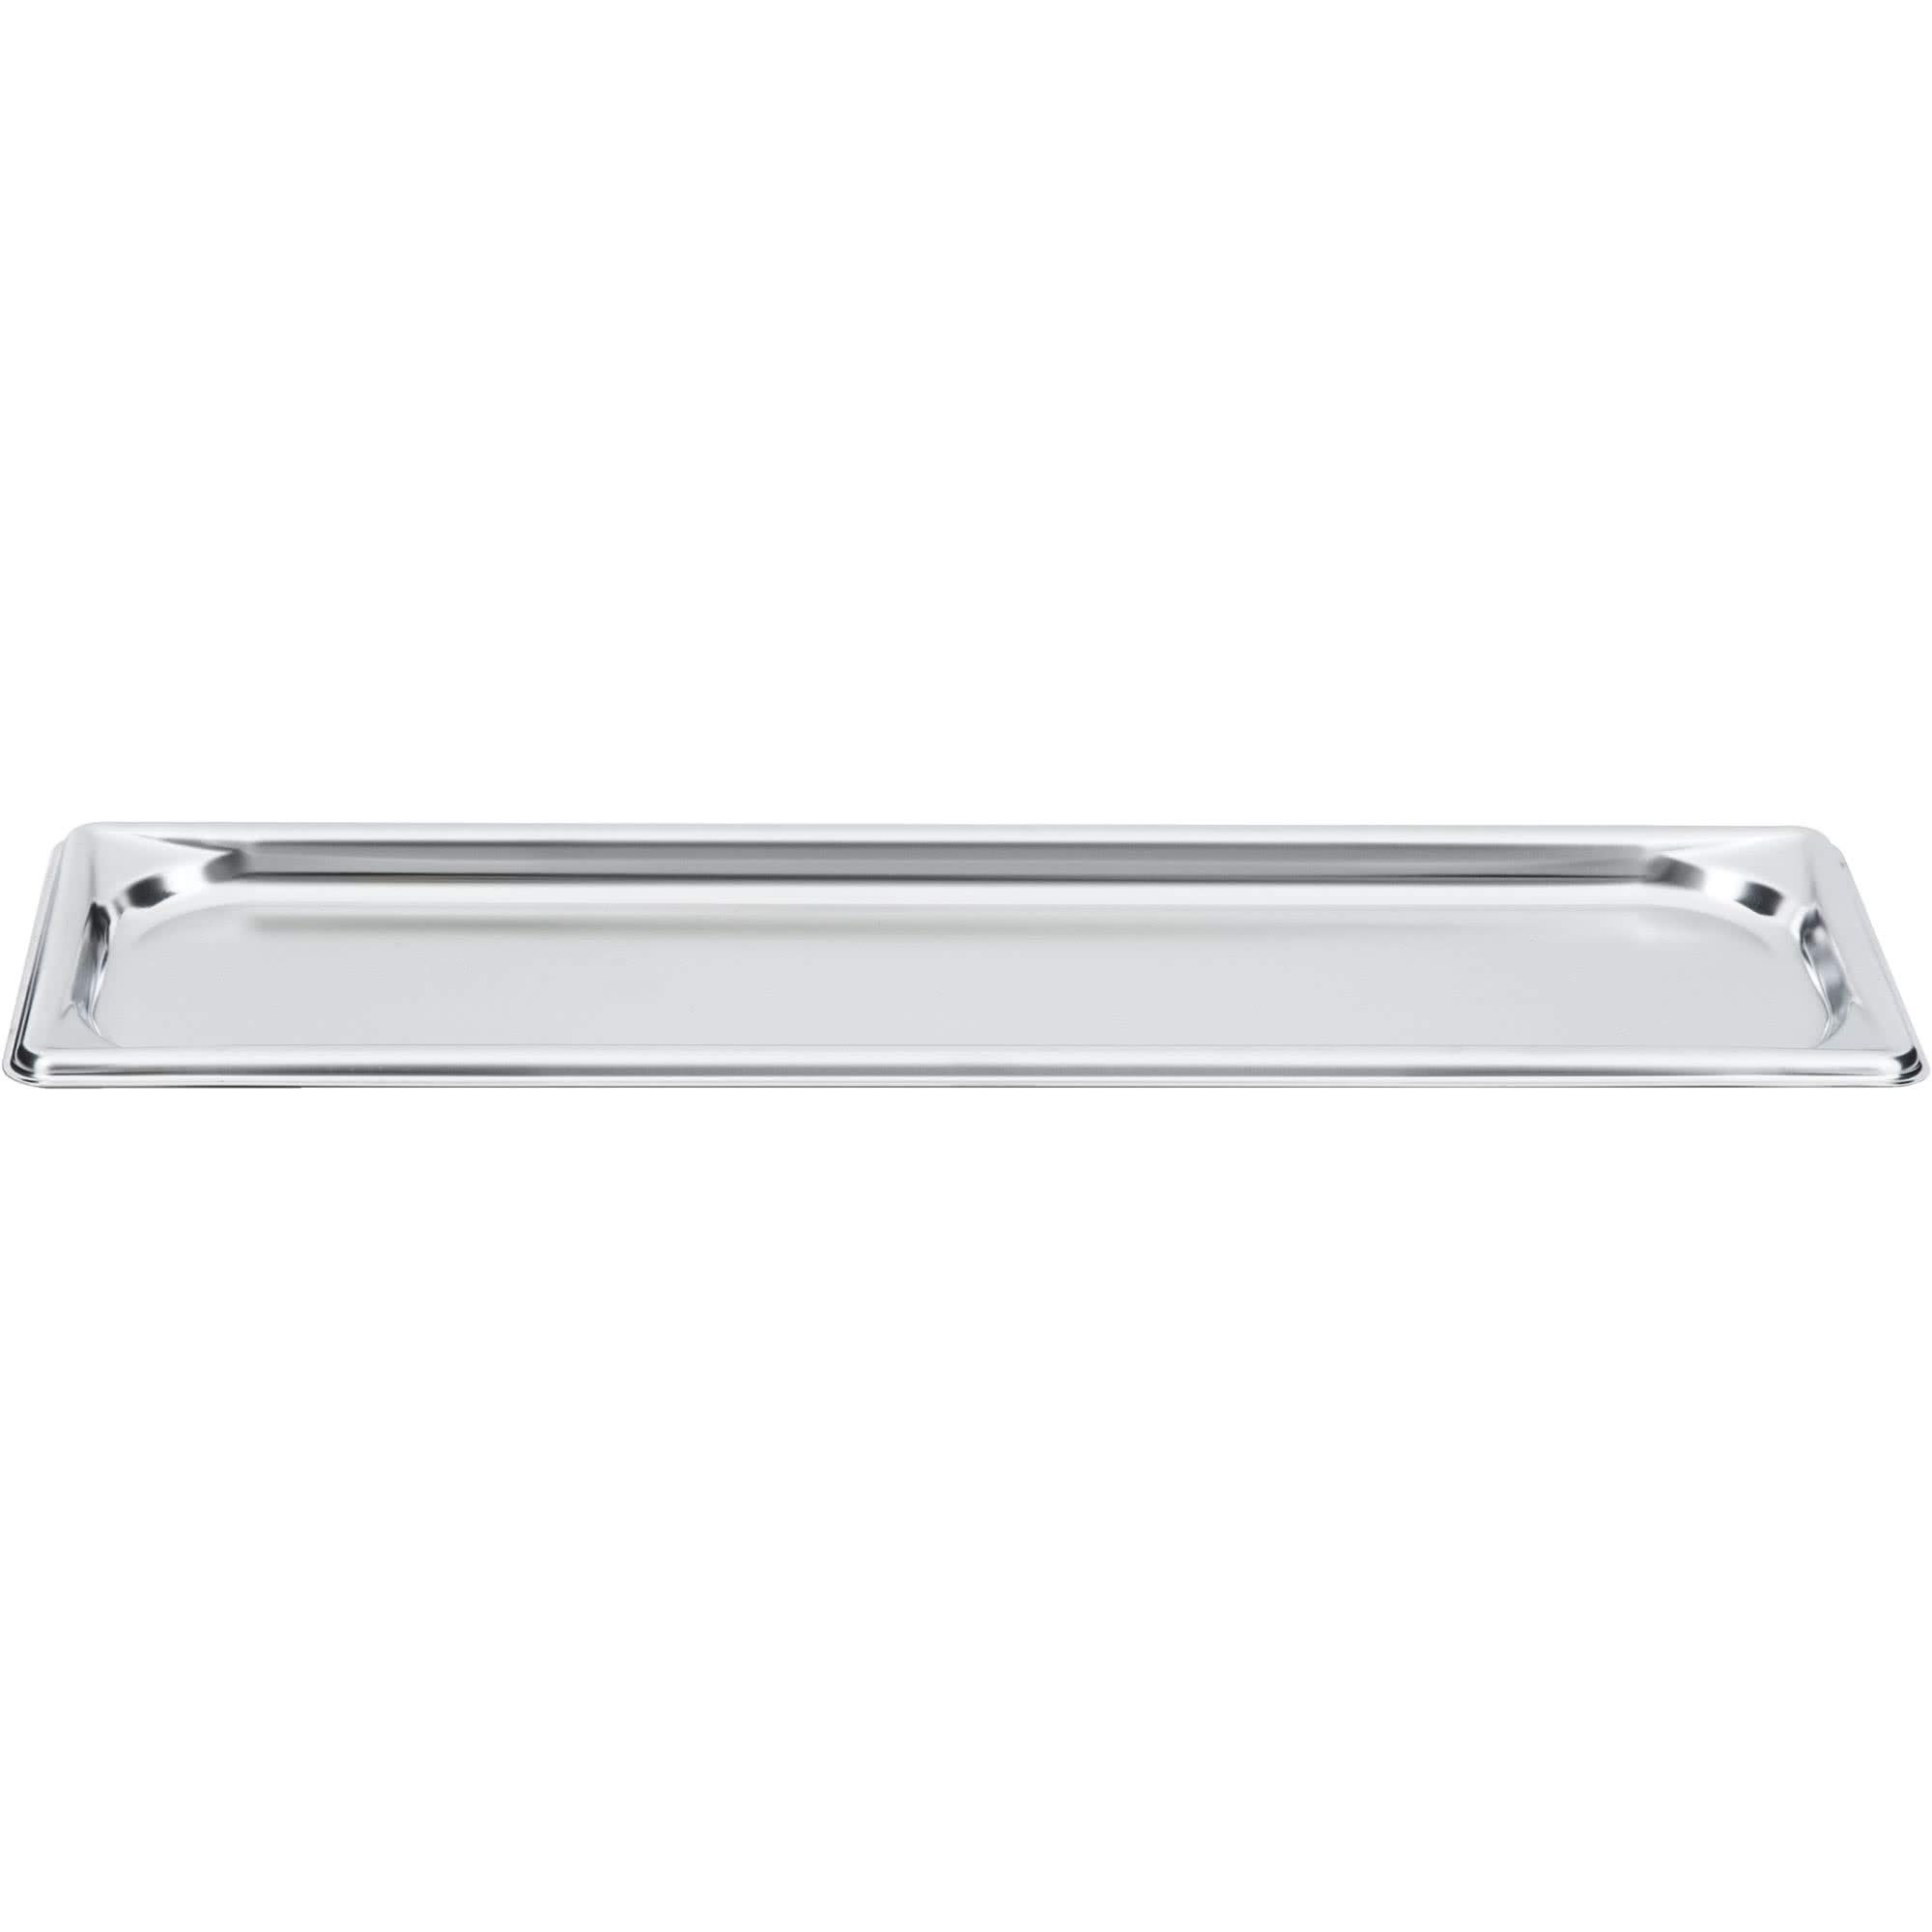 TableTop King 90502 Super Pan 3 1/2 Size Long Anti-Jam Stainless Steel Steam Table Tray - 3/4'' Deep by TableTop King